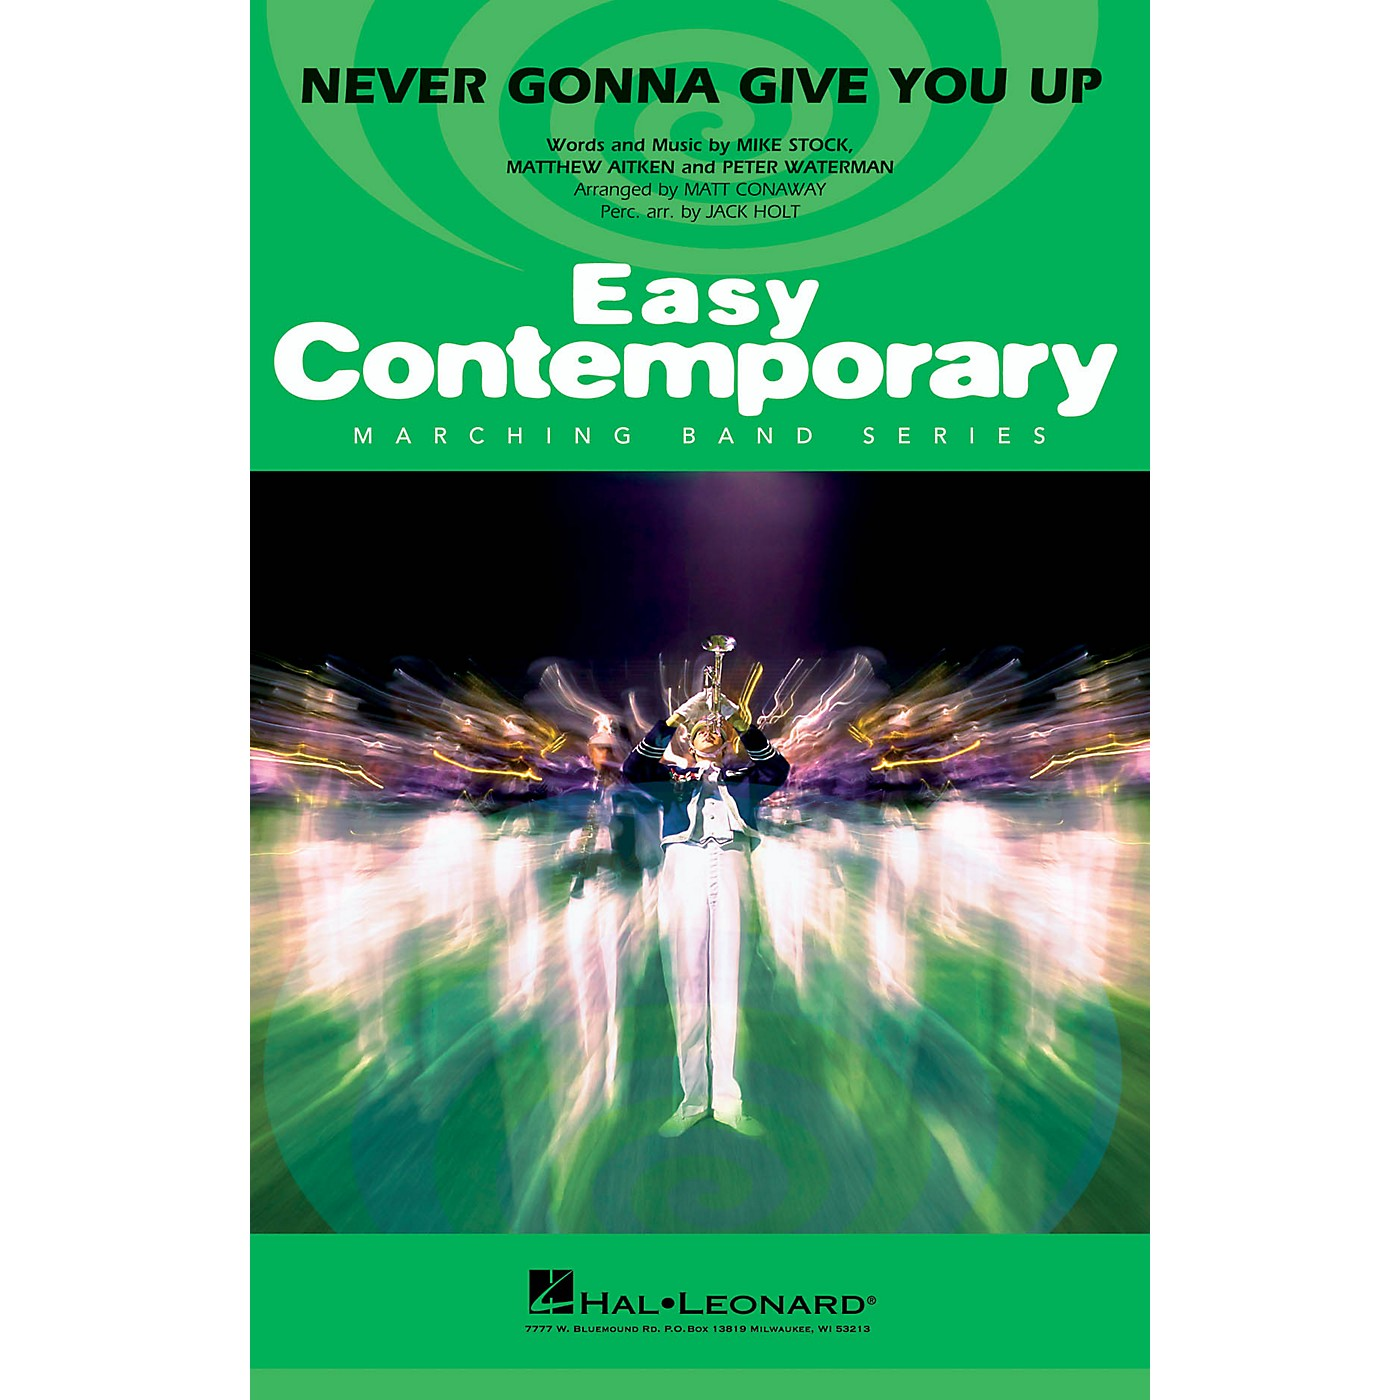 Hal Leonard Never Gonna Give You Up Marching Band Level 2-3 by Rick Astley Arranged by Matt Conaway thumbnail